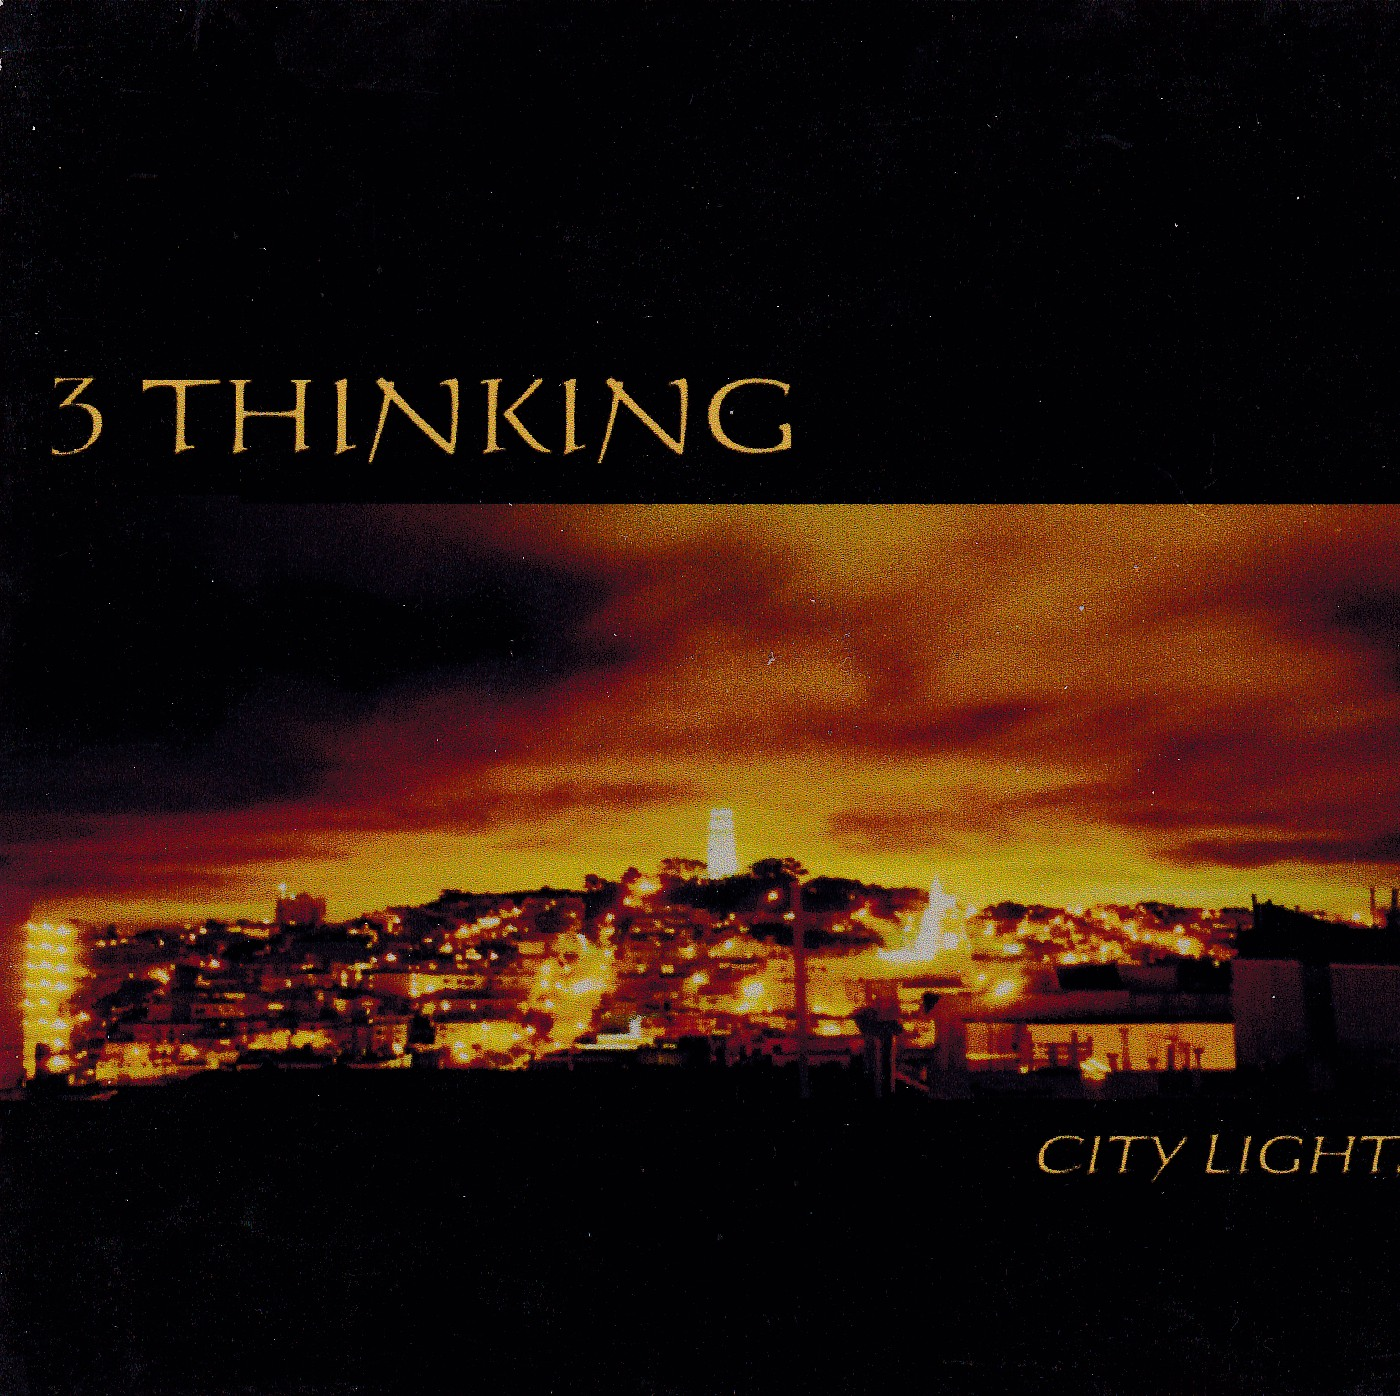 3 THINKING - CITY LIGHTS